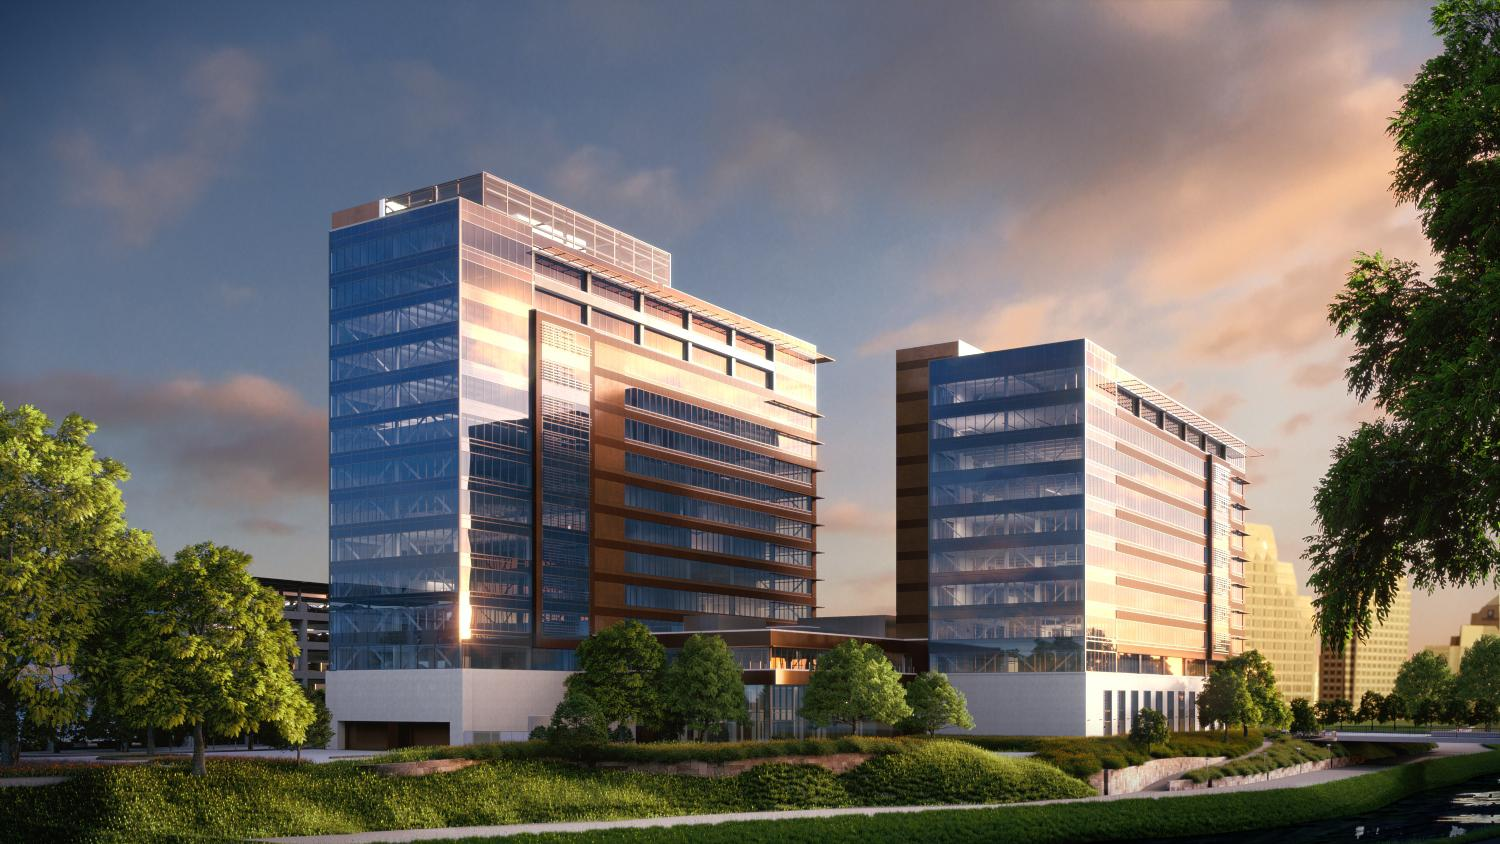 Total Cost For New Cps Energy Headquarters Could Come In